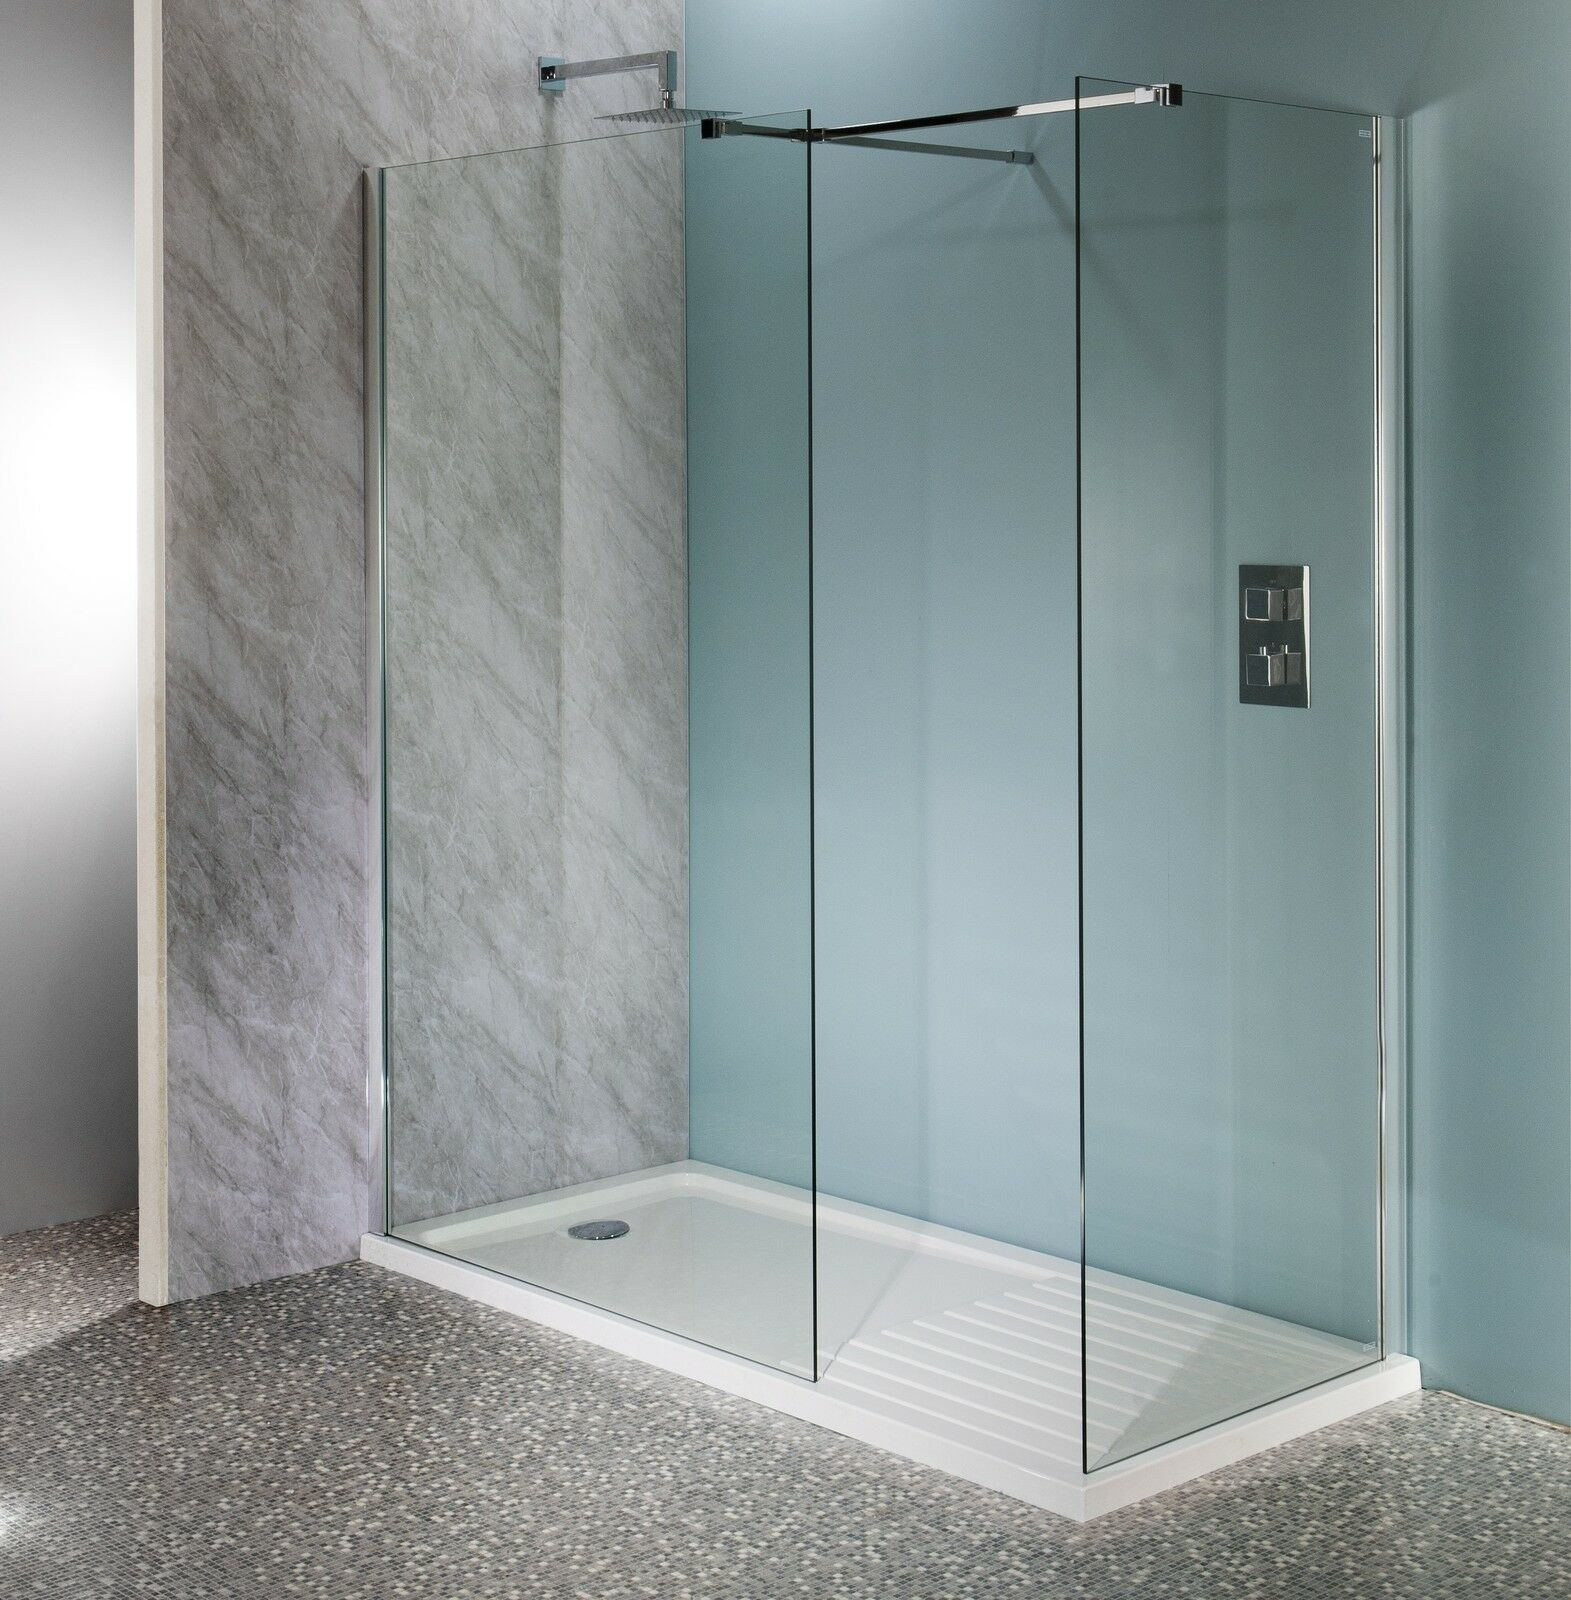 600mm Walk In Shower Enclosure Wet Room Easyclean 10mm Glass Tall Screen  Panel